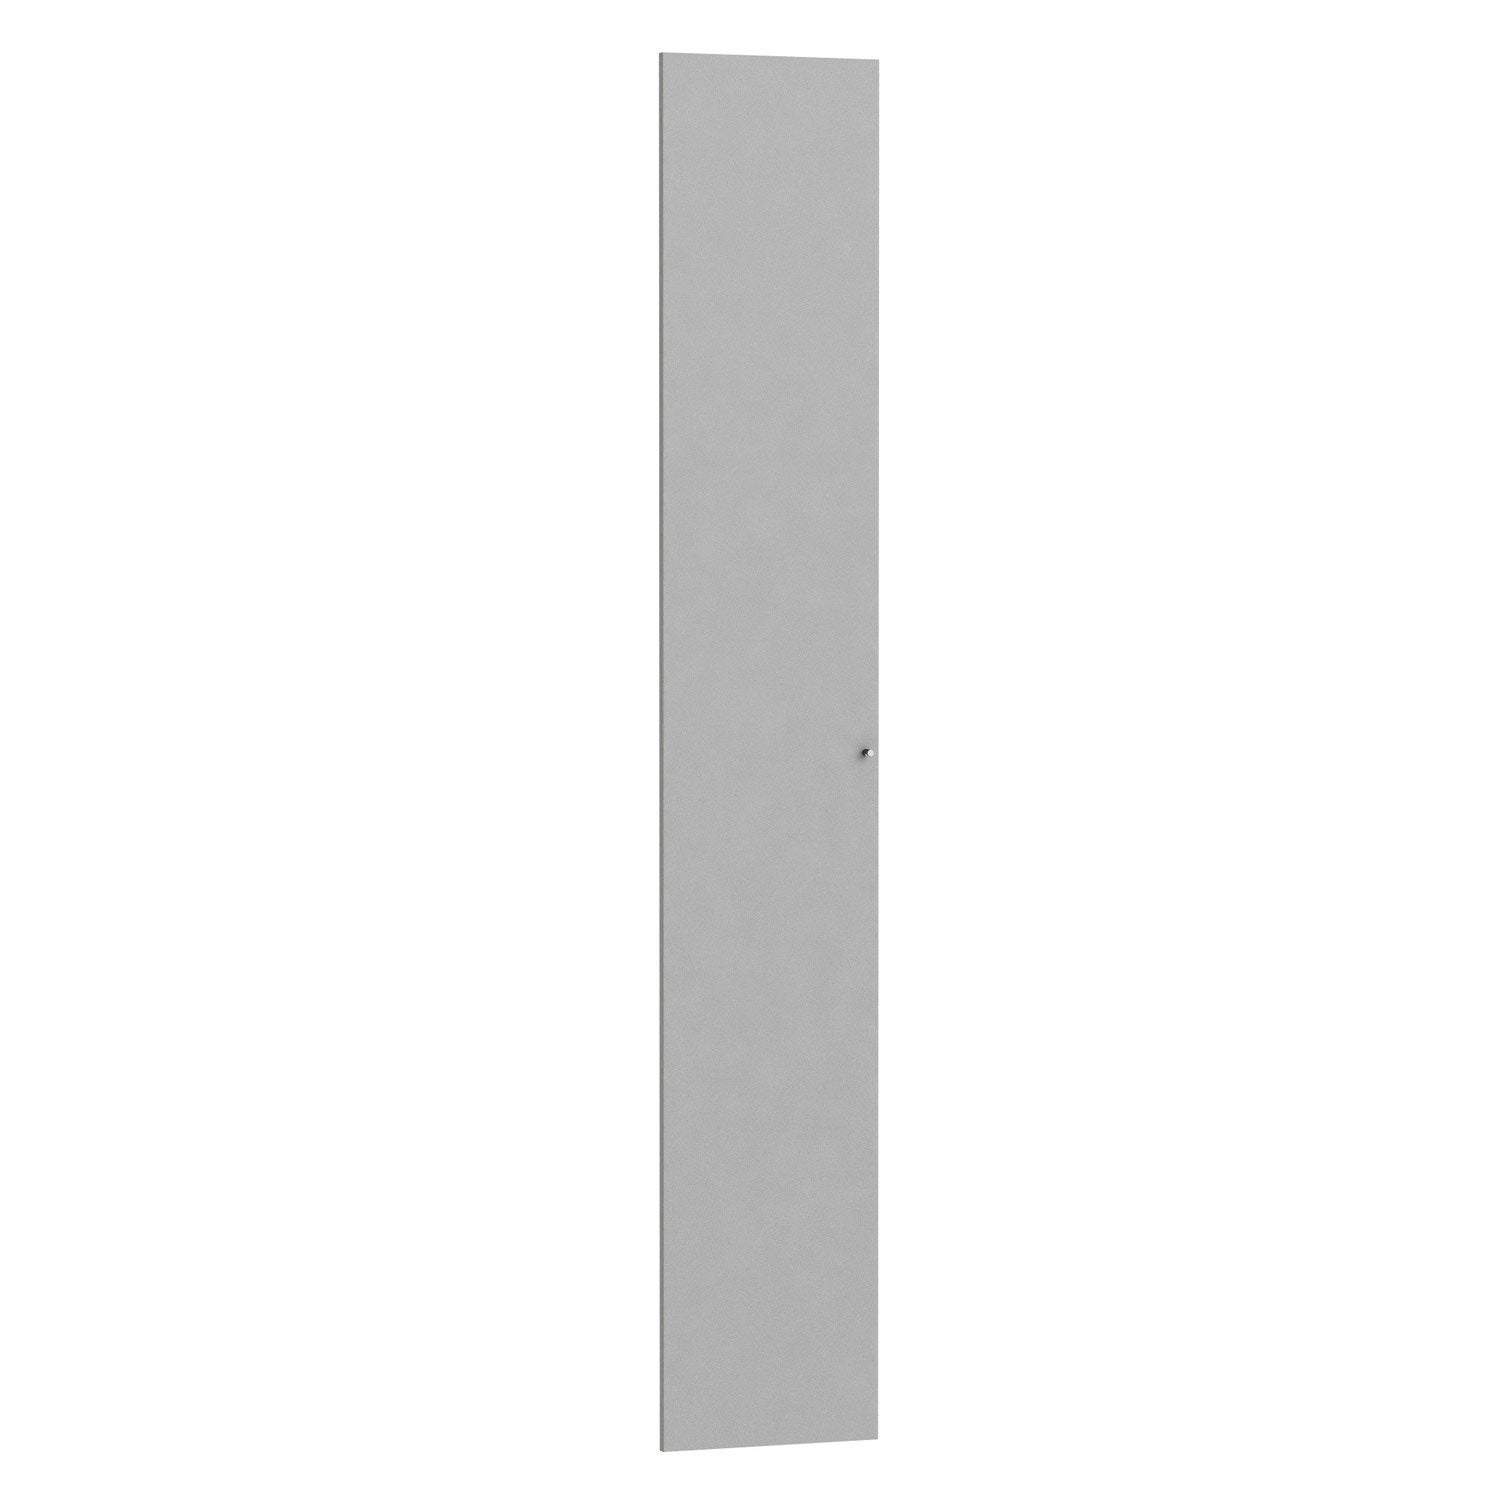 Porte battante spaceo home 240 x 40 x 1 6 cm anthracite - Porte battante leroy merlin ...